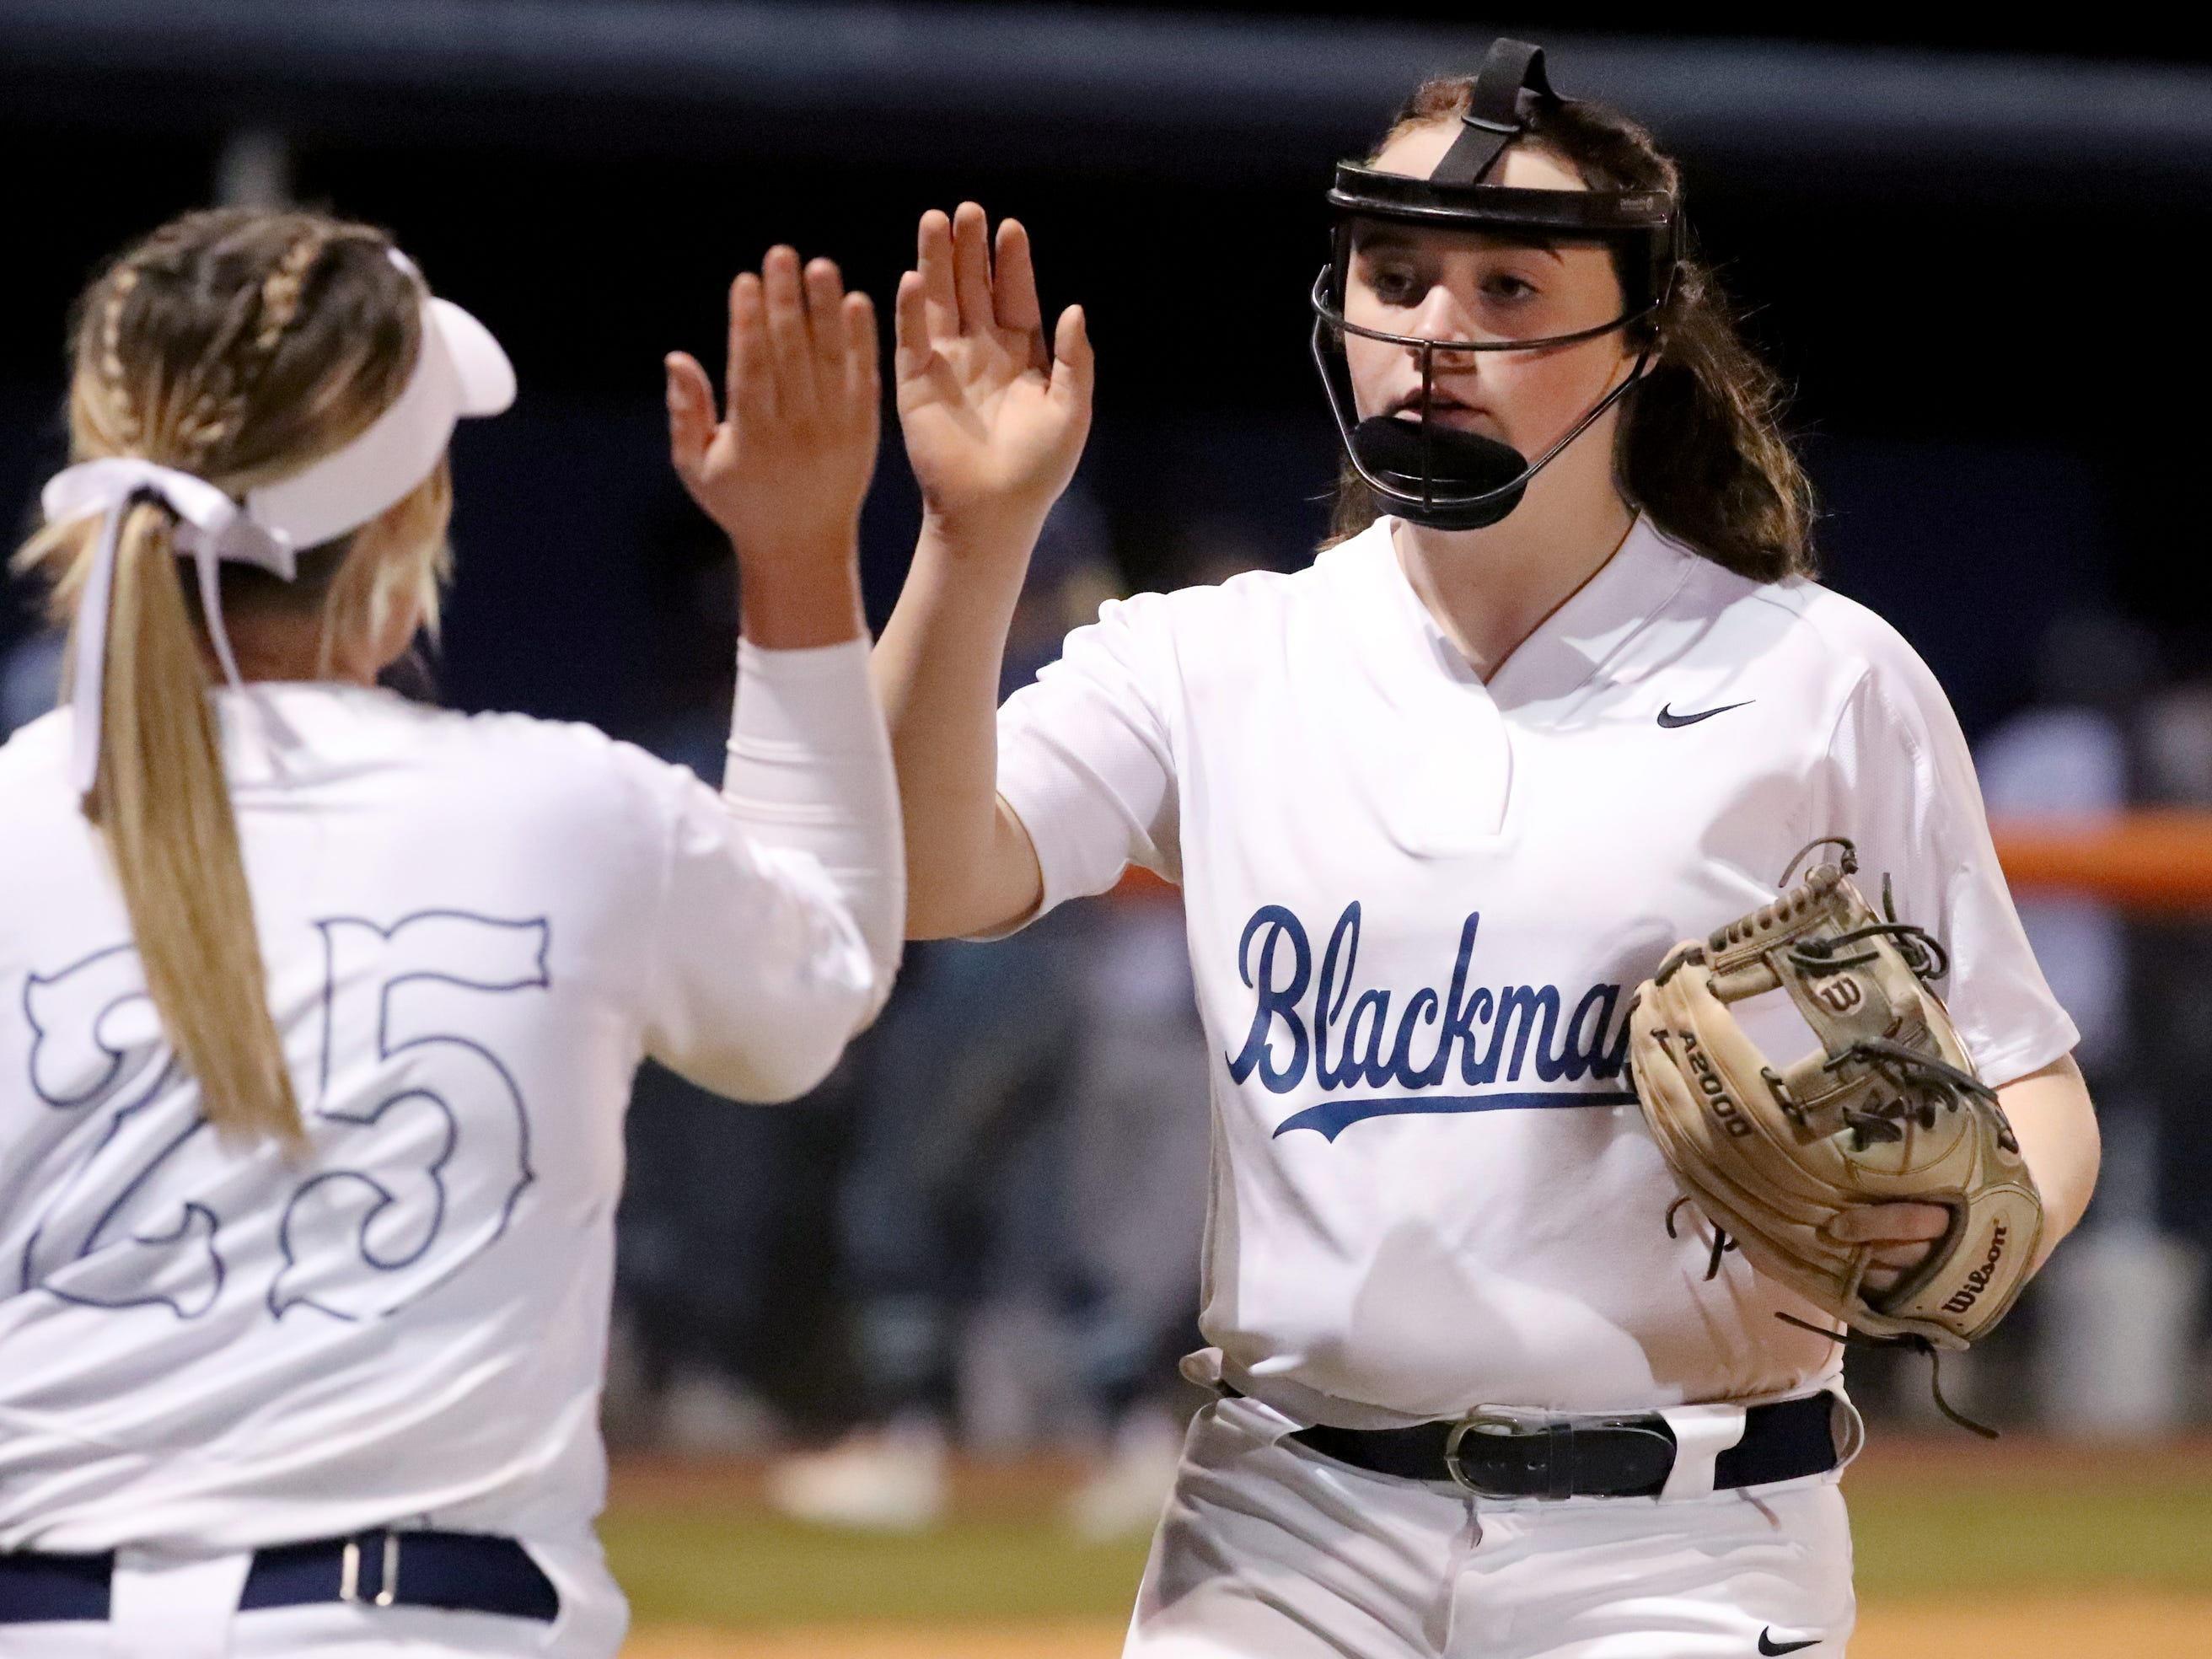 Blackman's Ashlynn Hamby (25) and Blackman's Killian Roberts (24) give each other a high-five after Blackman's Roberts  made an out to end the inning against Siegel, on Monday, March 18, 2019, at Blackman.